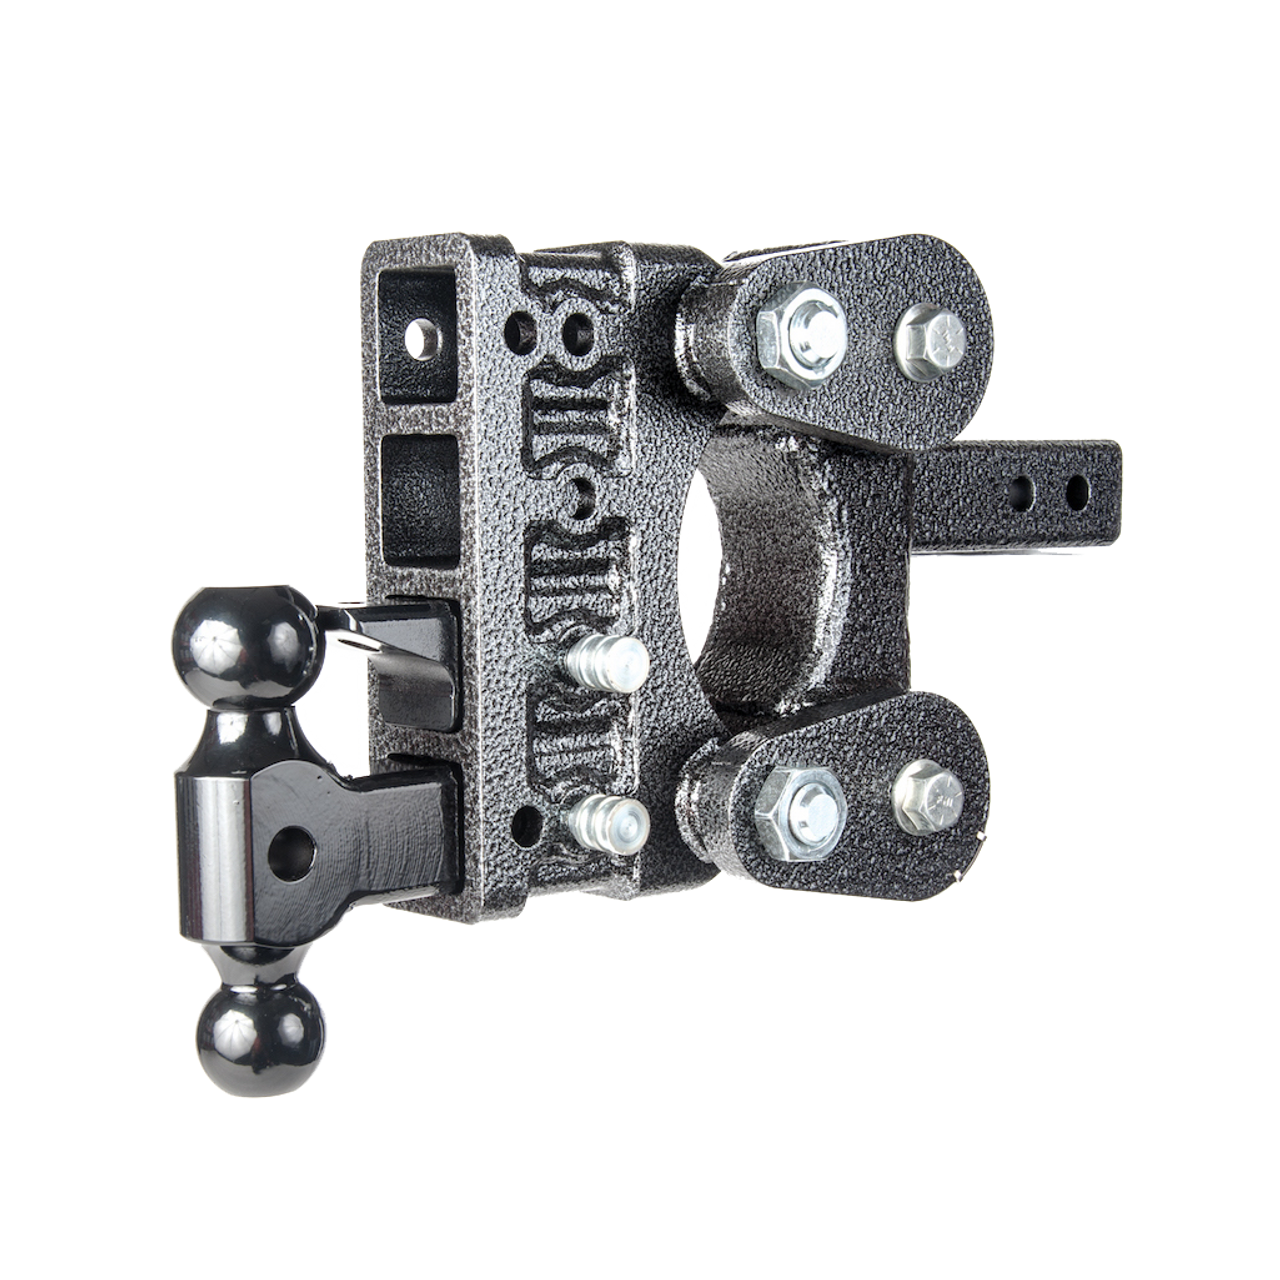 GH-1224 --- Four Position Torsion Flex with Dual Ball and Pintle - 16,000 lb Capacity